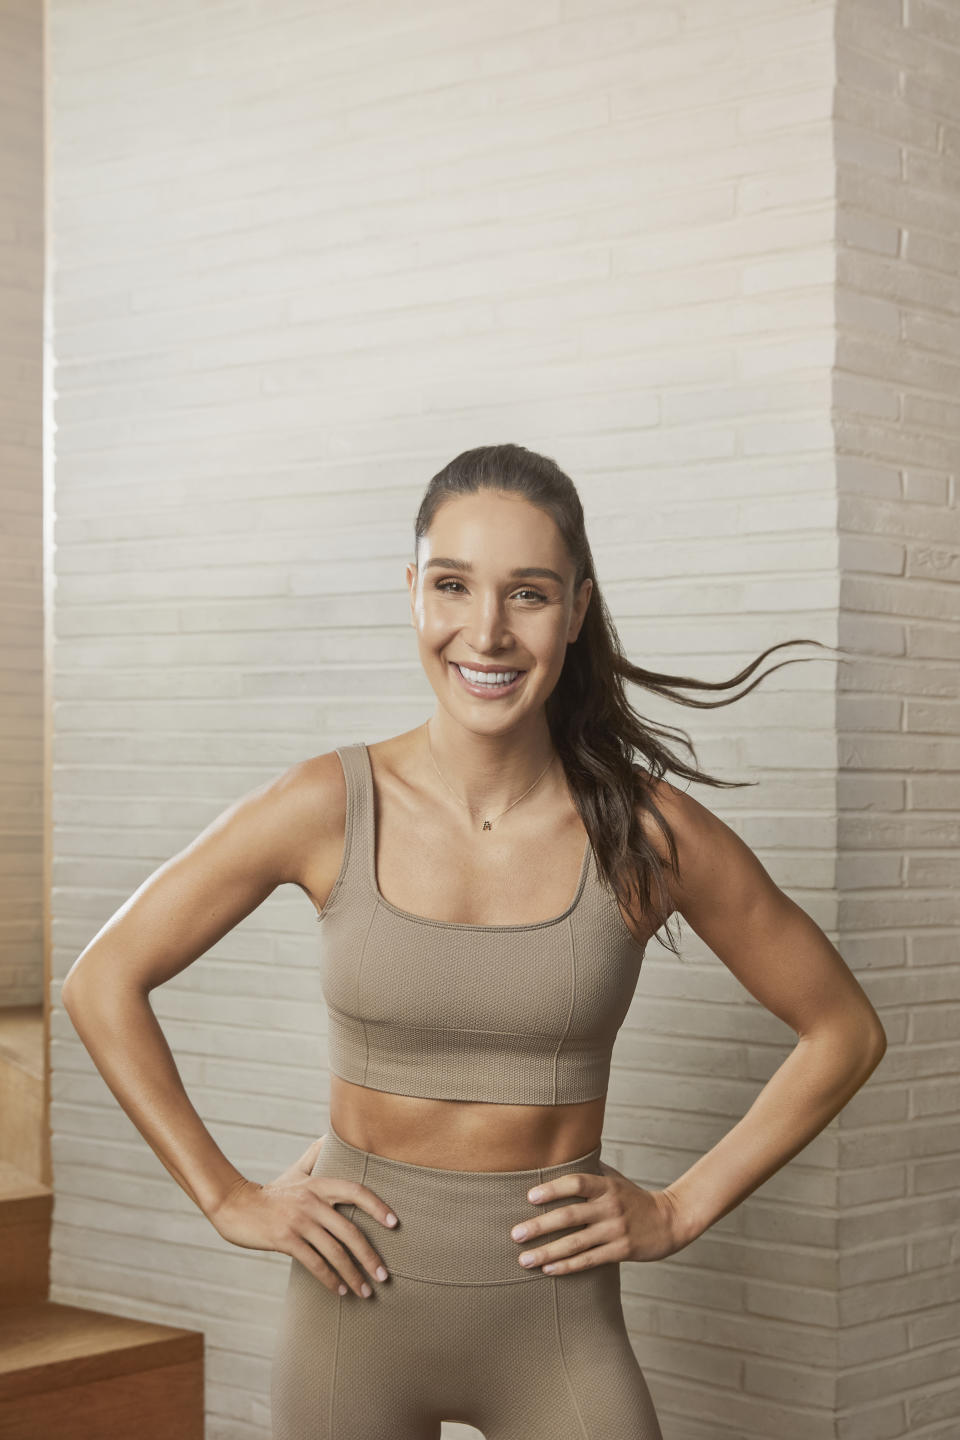 Kayla Itsines created a15-minute low impact workout that is gentle on your joints. (Photo: Kayla Itsines)